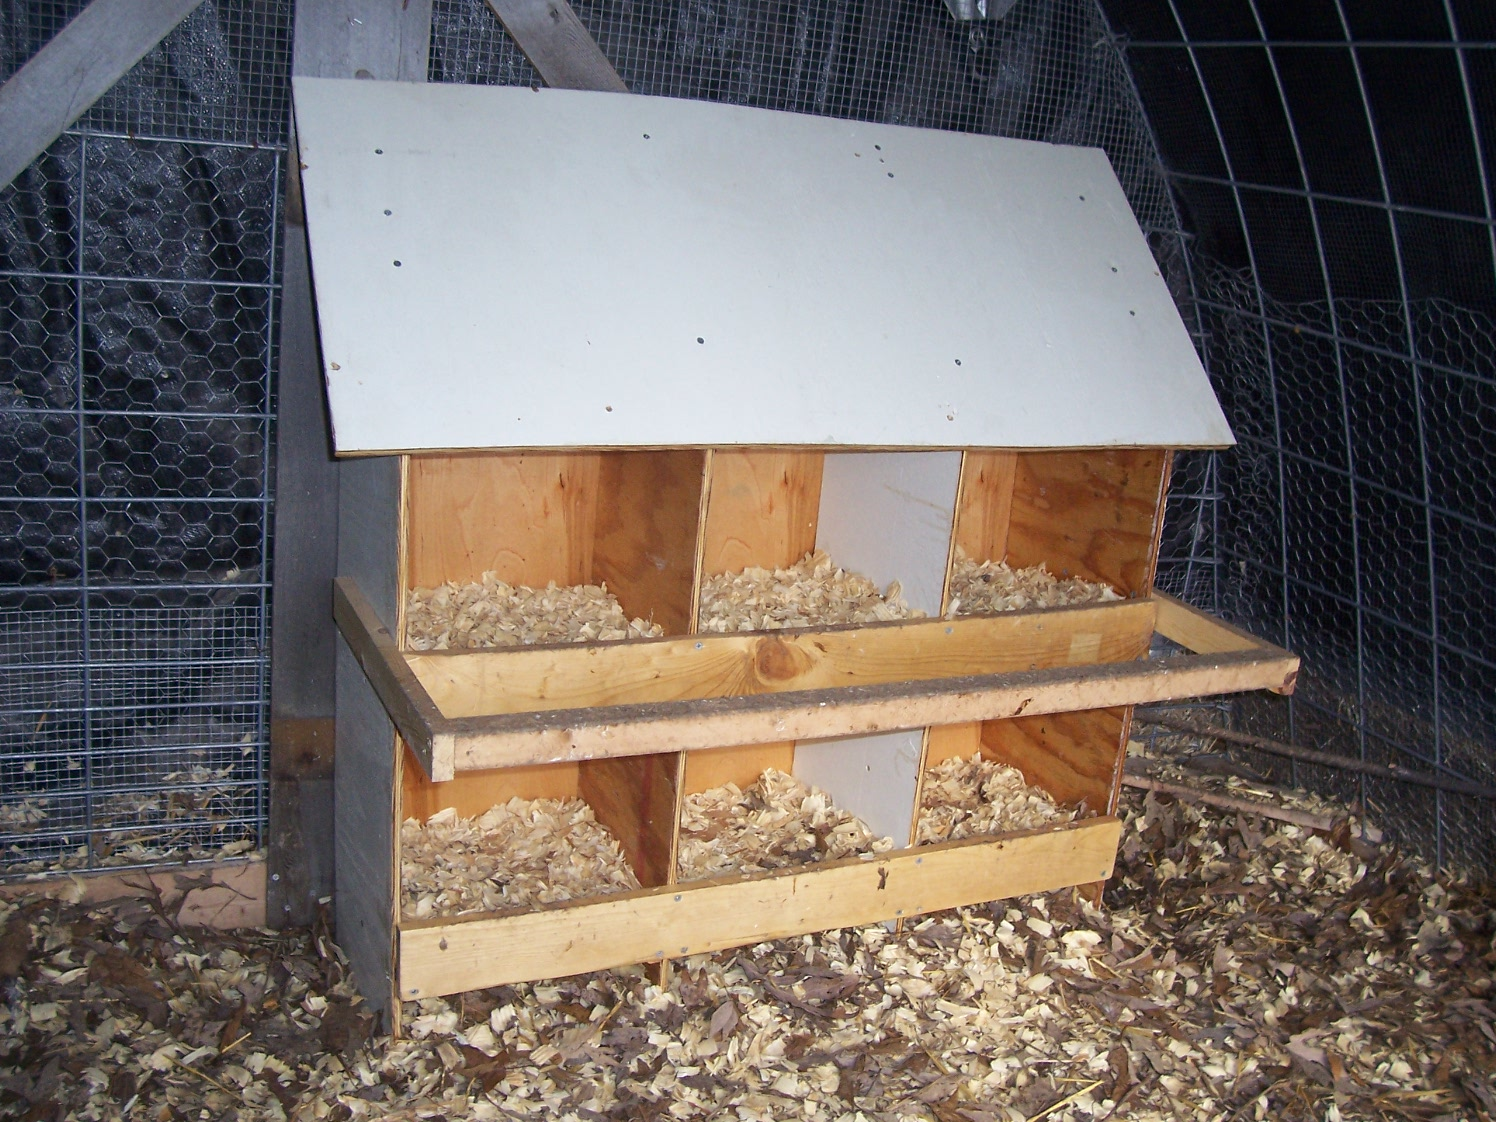 Joeu0027s Garden Journal A Low cost easy to build chicken nest box design & Joeu0027s Garden Journal: A Low cost easy to build chicken nest box ... Aboutintivar.Com